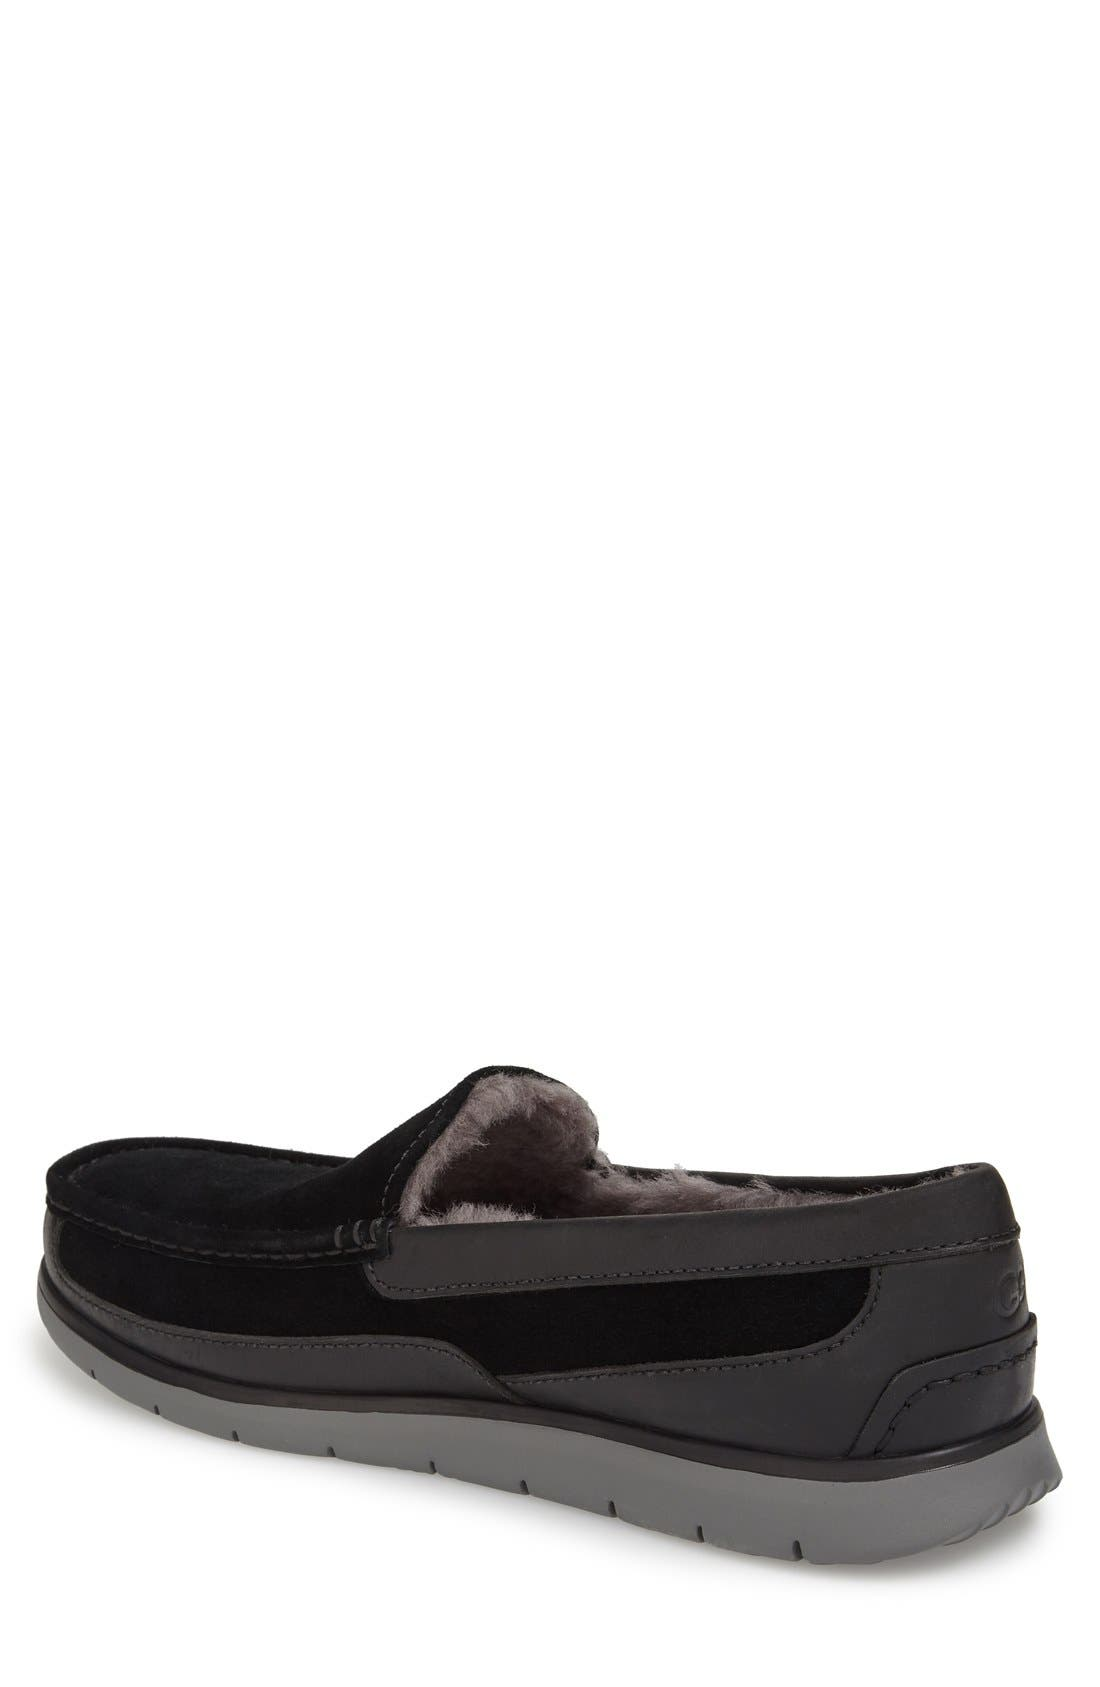 Fascot Indoor/Outdoor Slipper,                             Alternate thumbnail 2, color,                             001